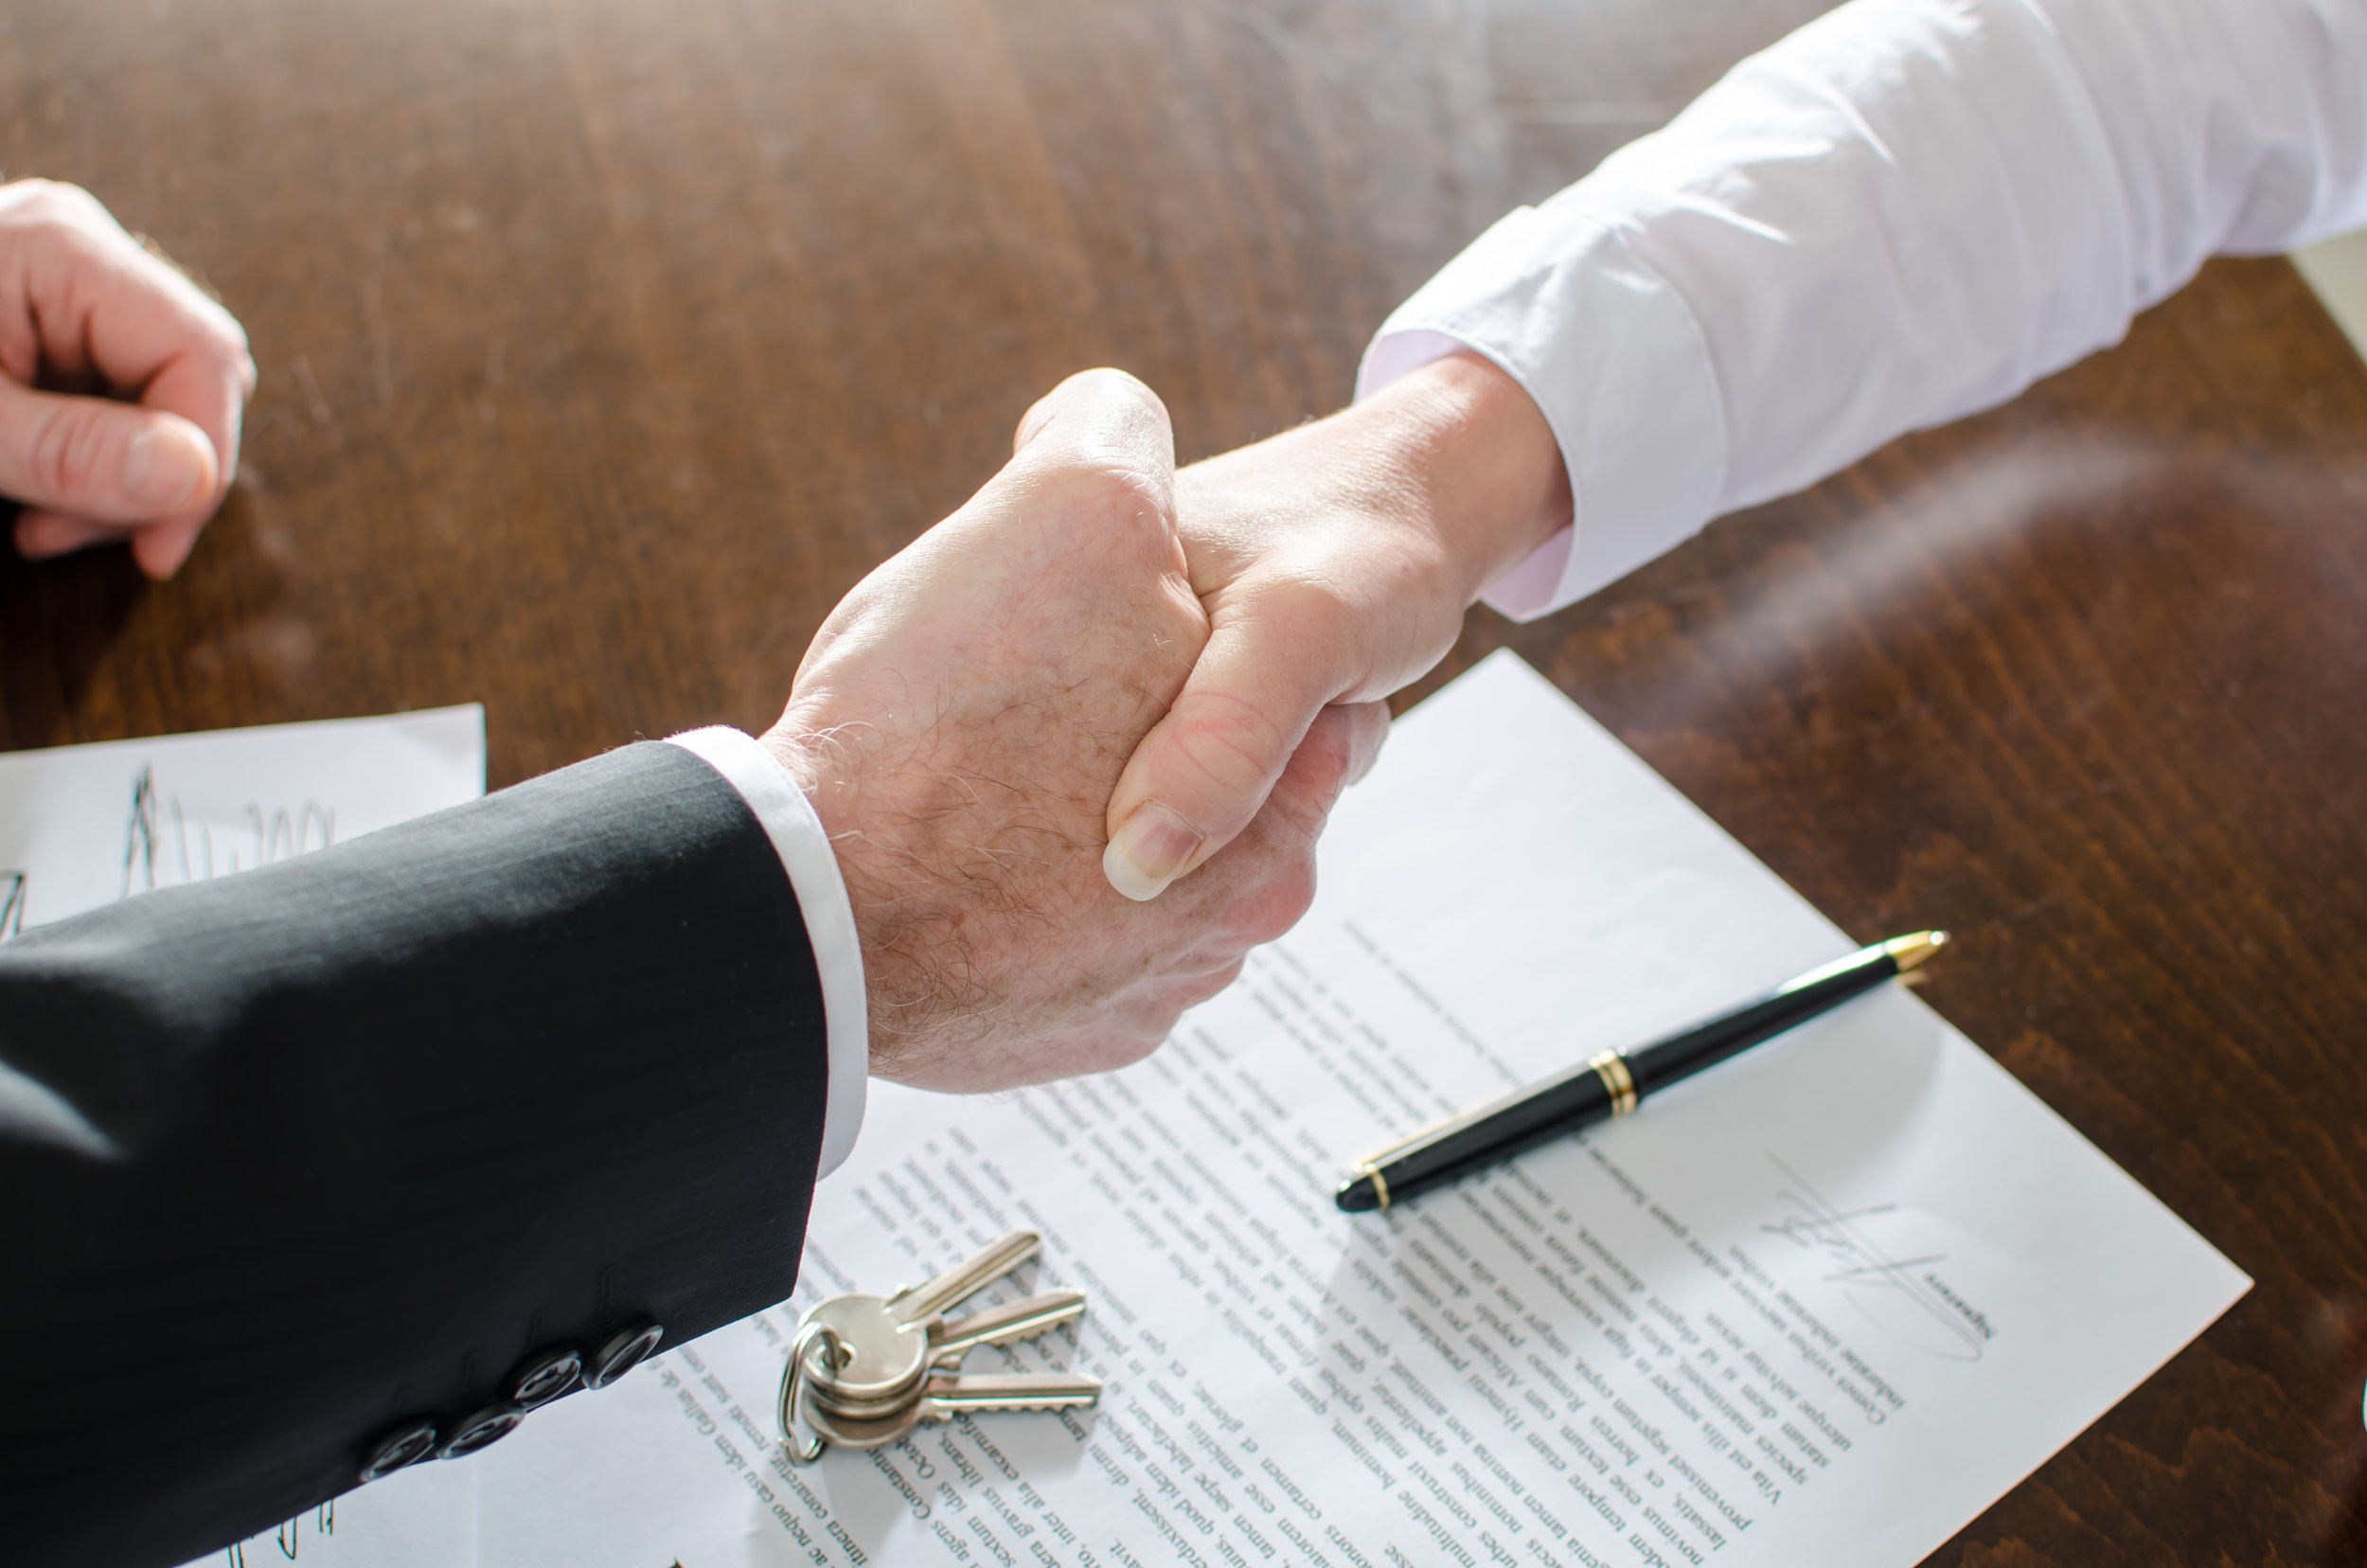 Real estate lawyer and client shaking hands over a signed document represents real estate law services.